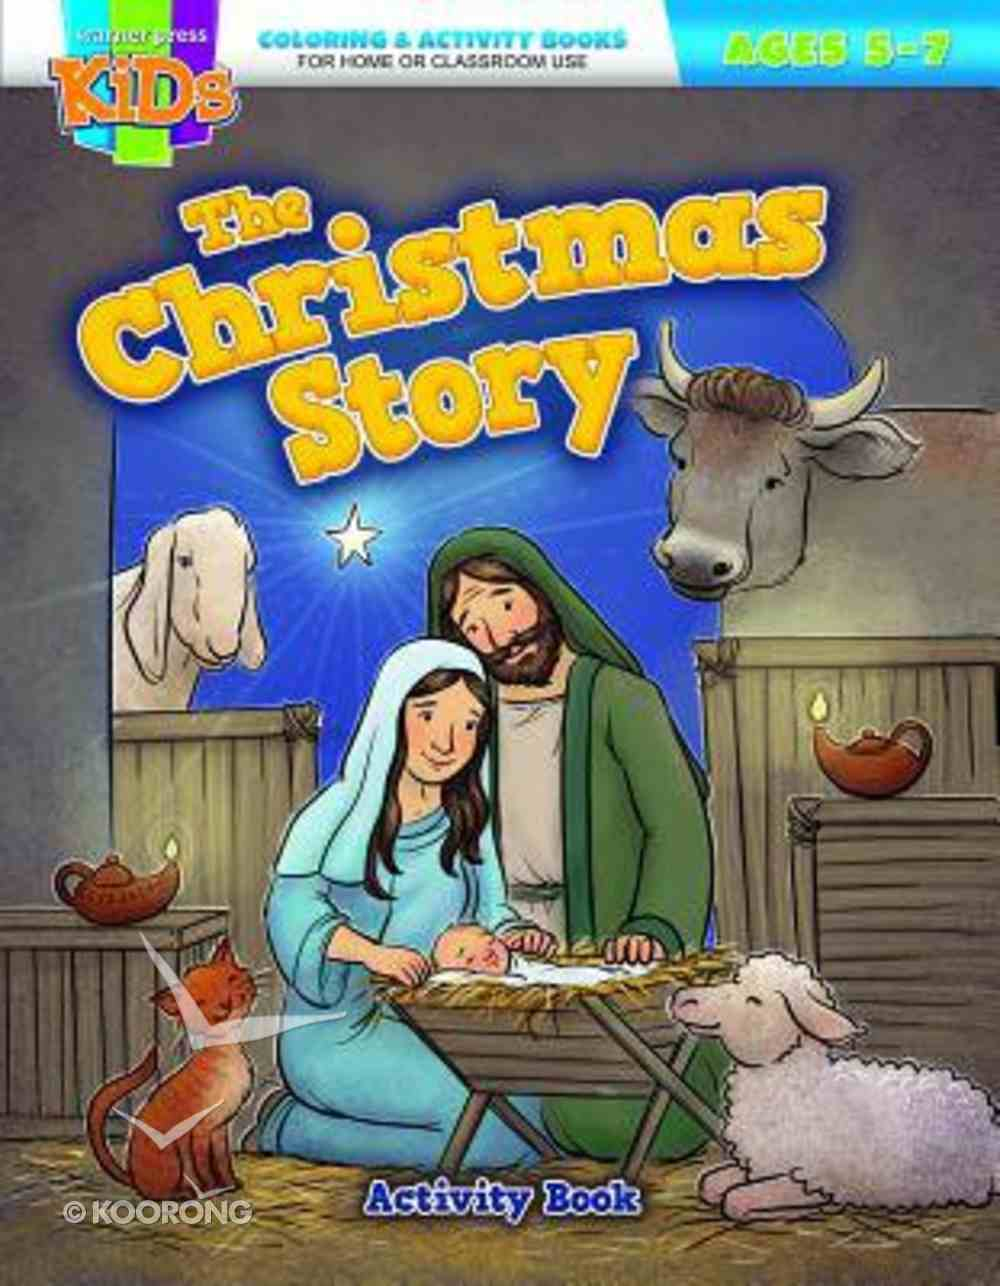 The Christmas Story (Ages 5-7, Reproducible) (Warner Press Colouring & Activity Books Series) Paperback